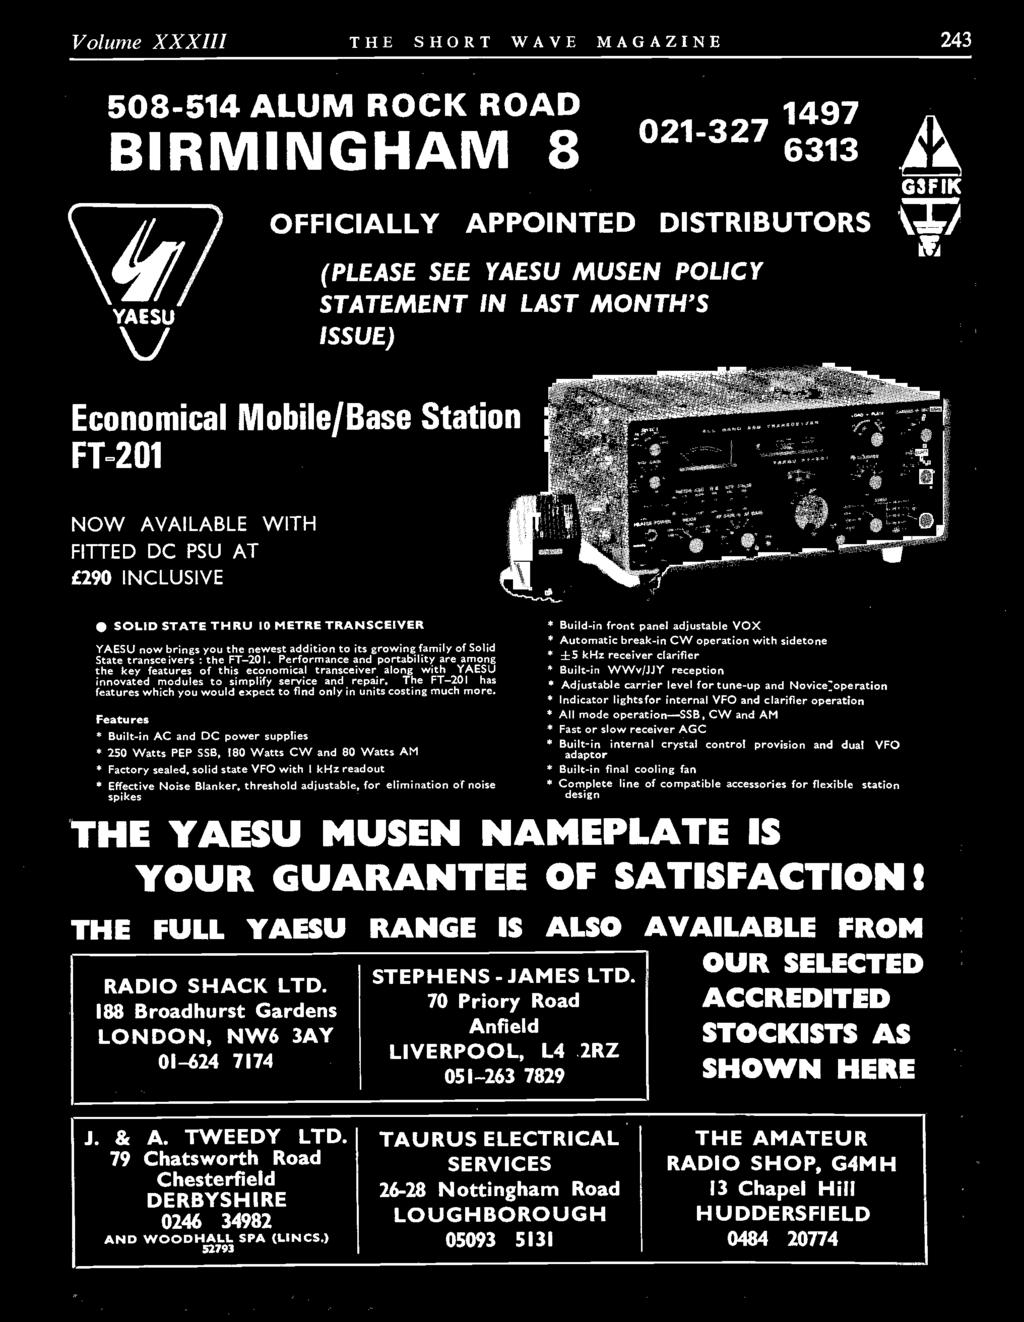 Tn E 3 Thirty Pence Vol Xxxiii No 5 Lju For The Radio Amateur Shure Model M62 Simple Audio Level Controller Circuit Design Performance And Portability Are Among Key Features Of This Economical Transceiver Along With Yaesu Innovated Volume